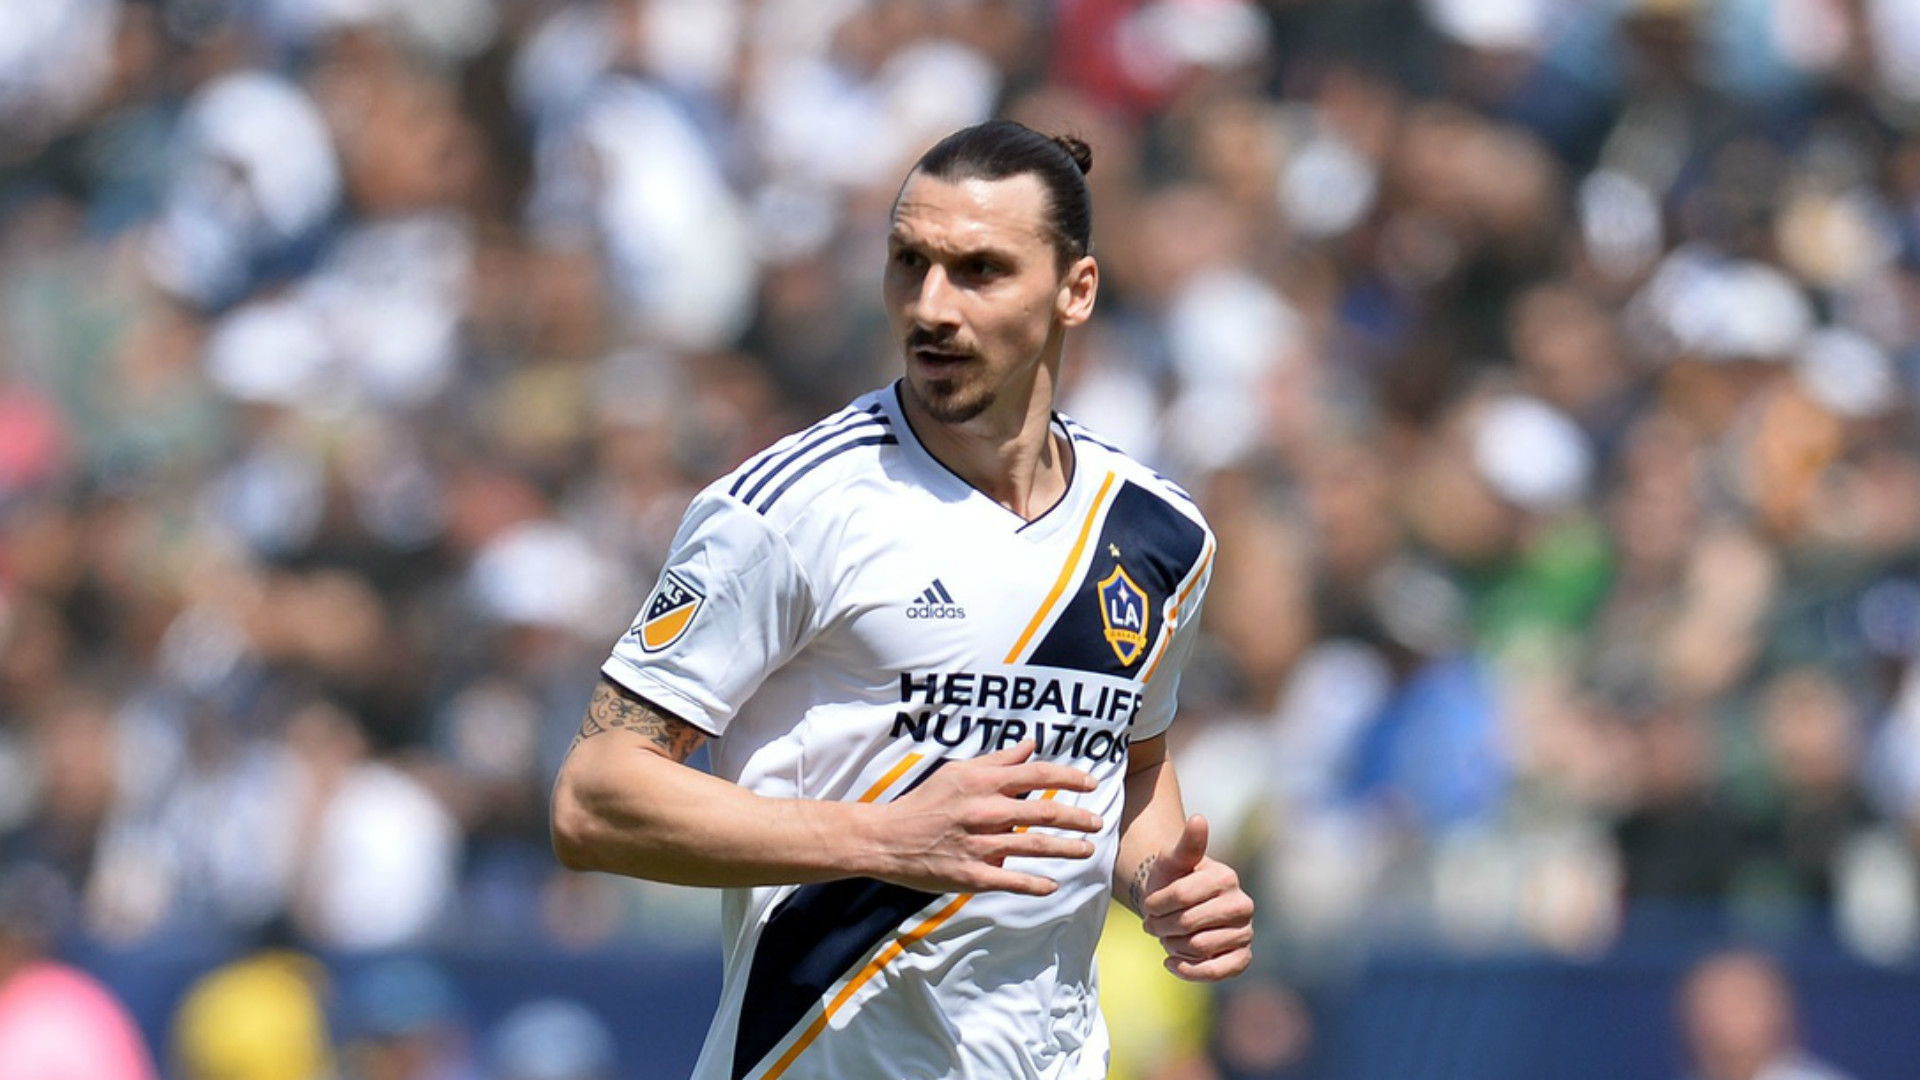 Res: 1920x1080, Zlatan Ibrahimovic MLS 2 LA Galaxy 03312018